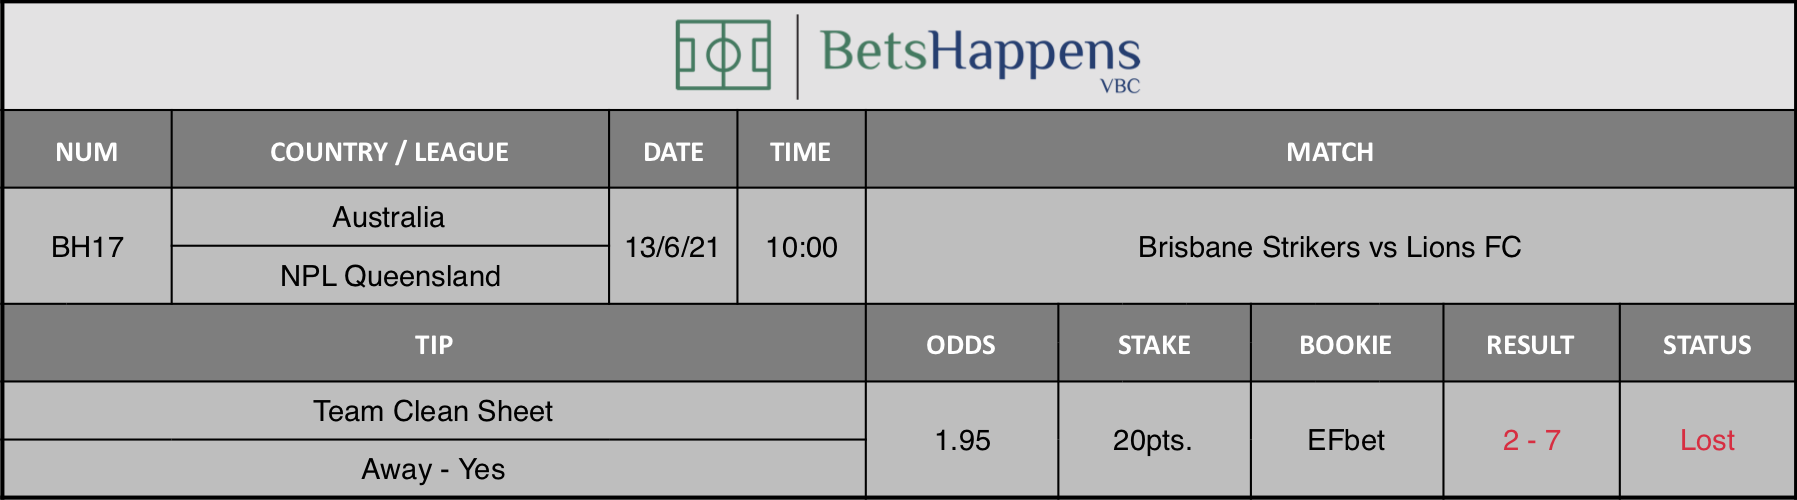 Results of our tip for the Brisbane Strikers vs Lions FC Match Team Clean Sheet Away - Yes is recommended.